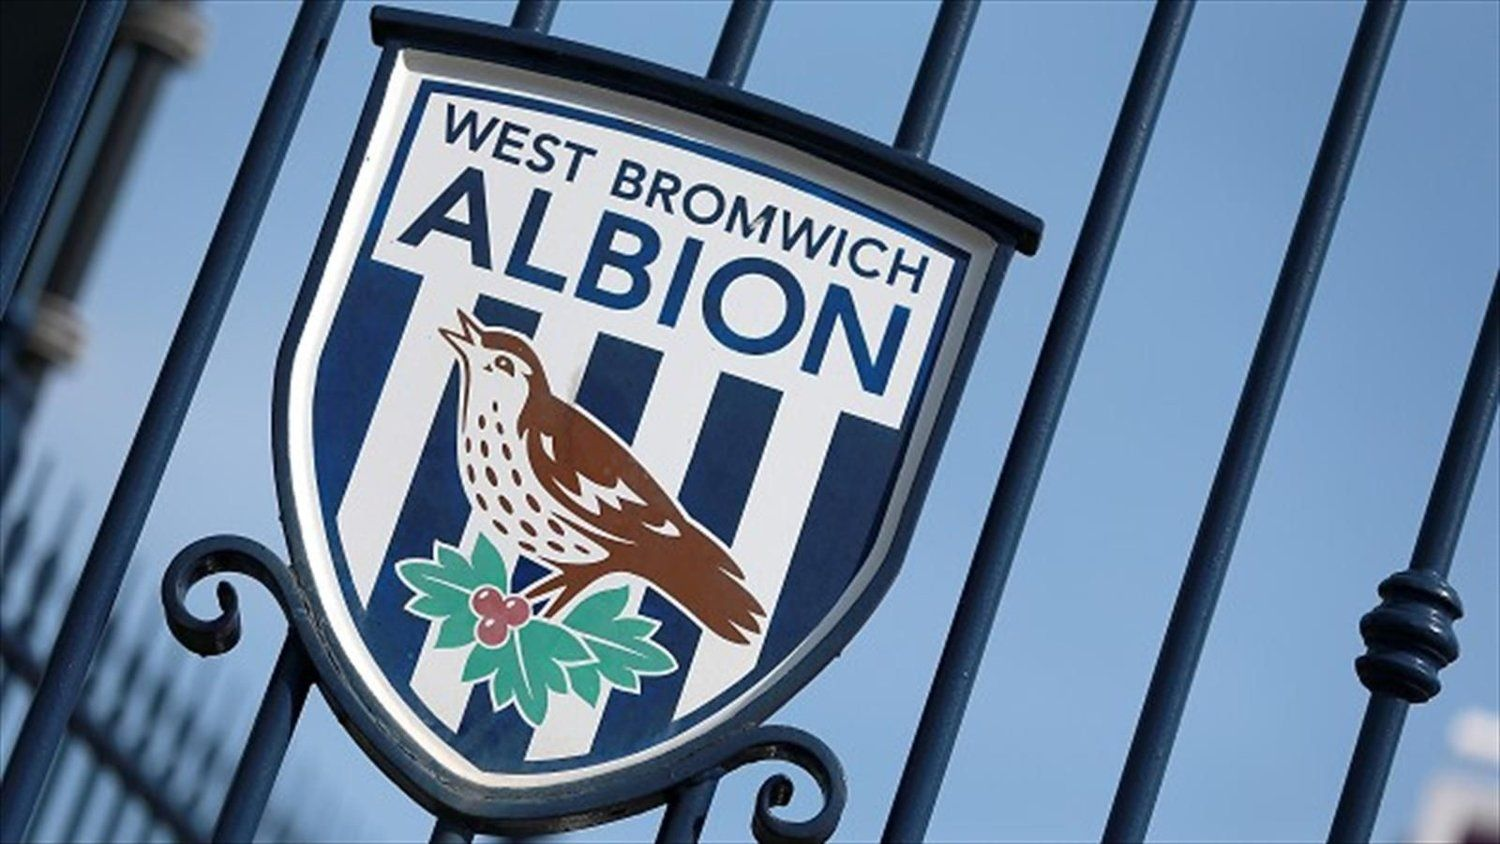 West Bromwich Albion F.C. Wallpapers - Wallpaper Cave